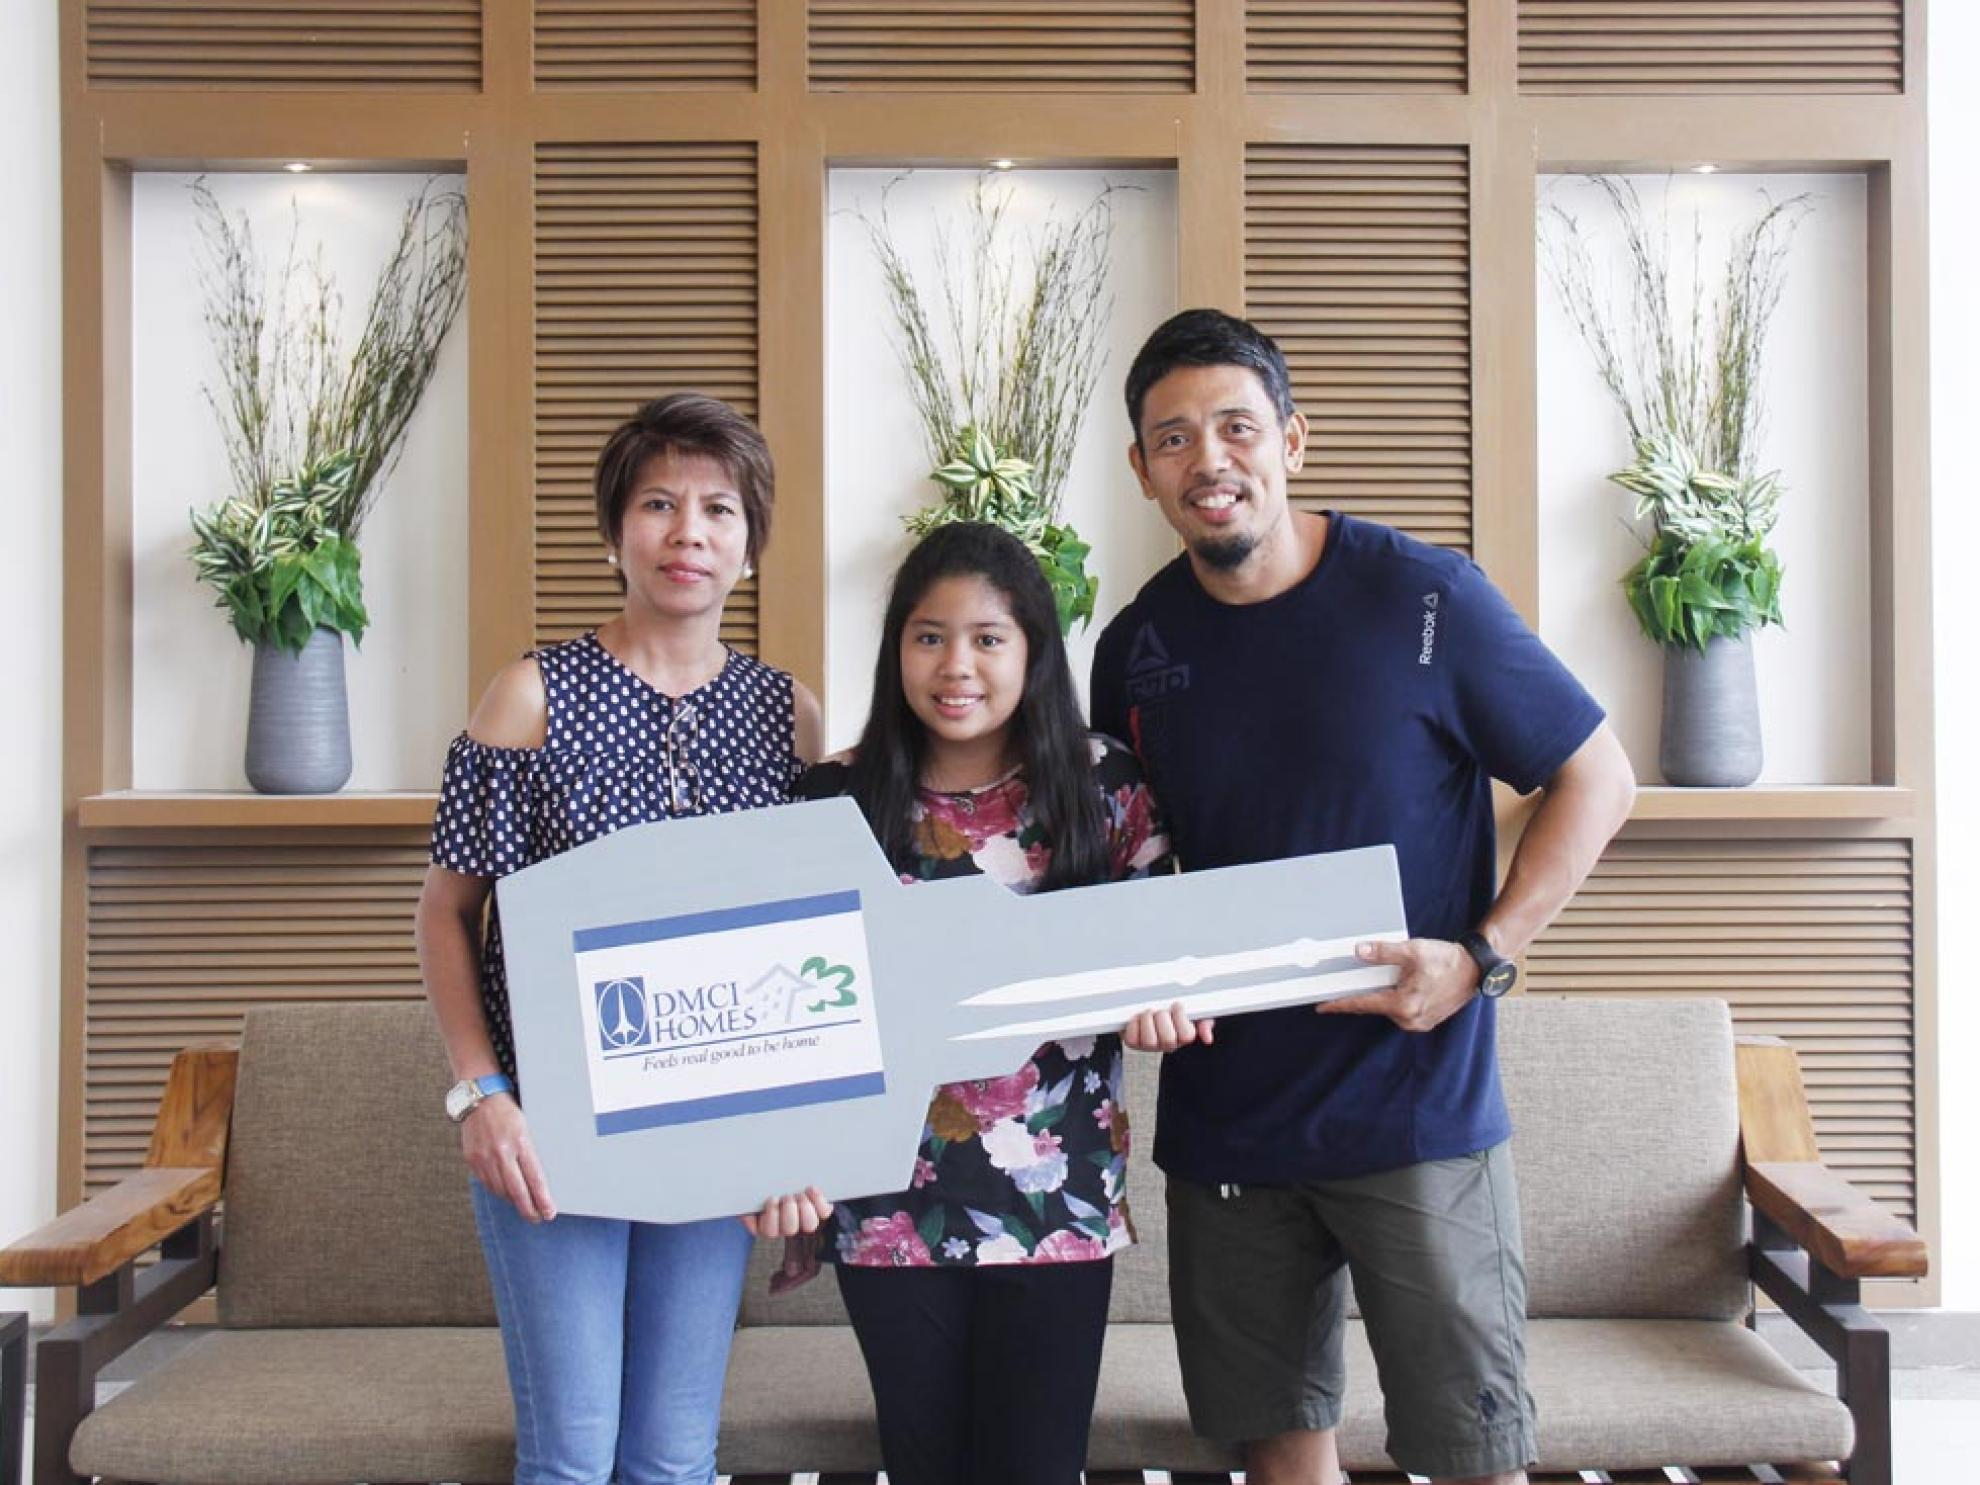 Entrepreneur couple happy to find dream home in their 'comfort zone'